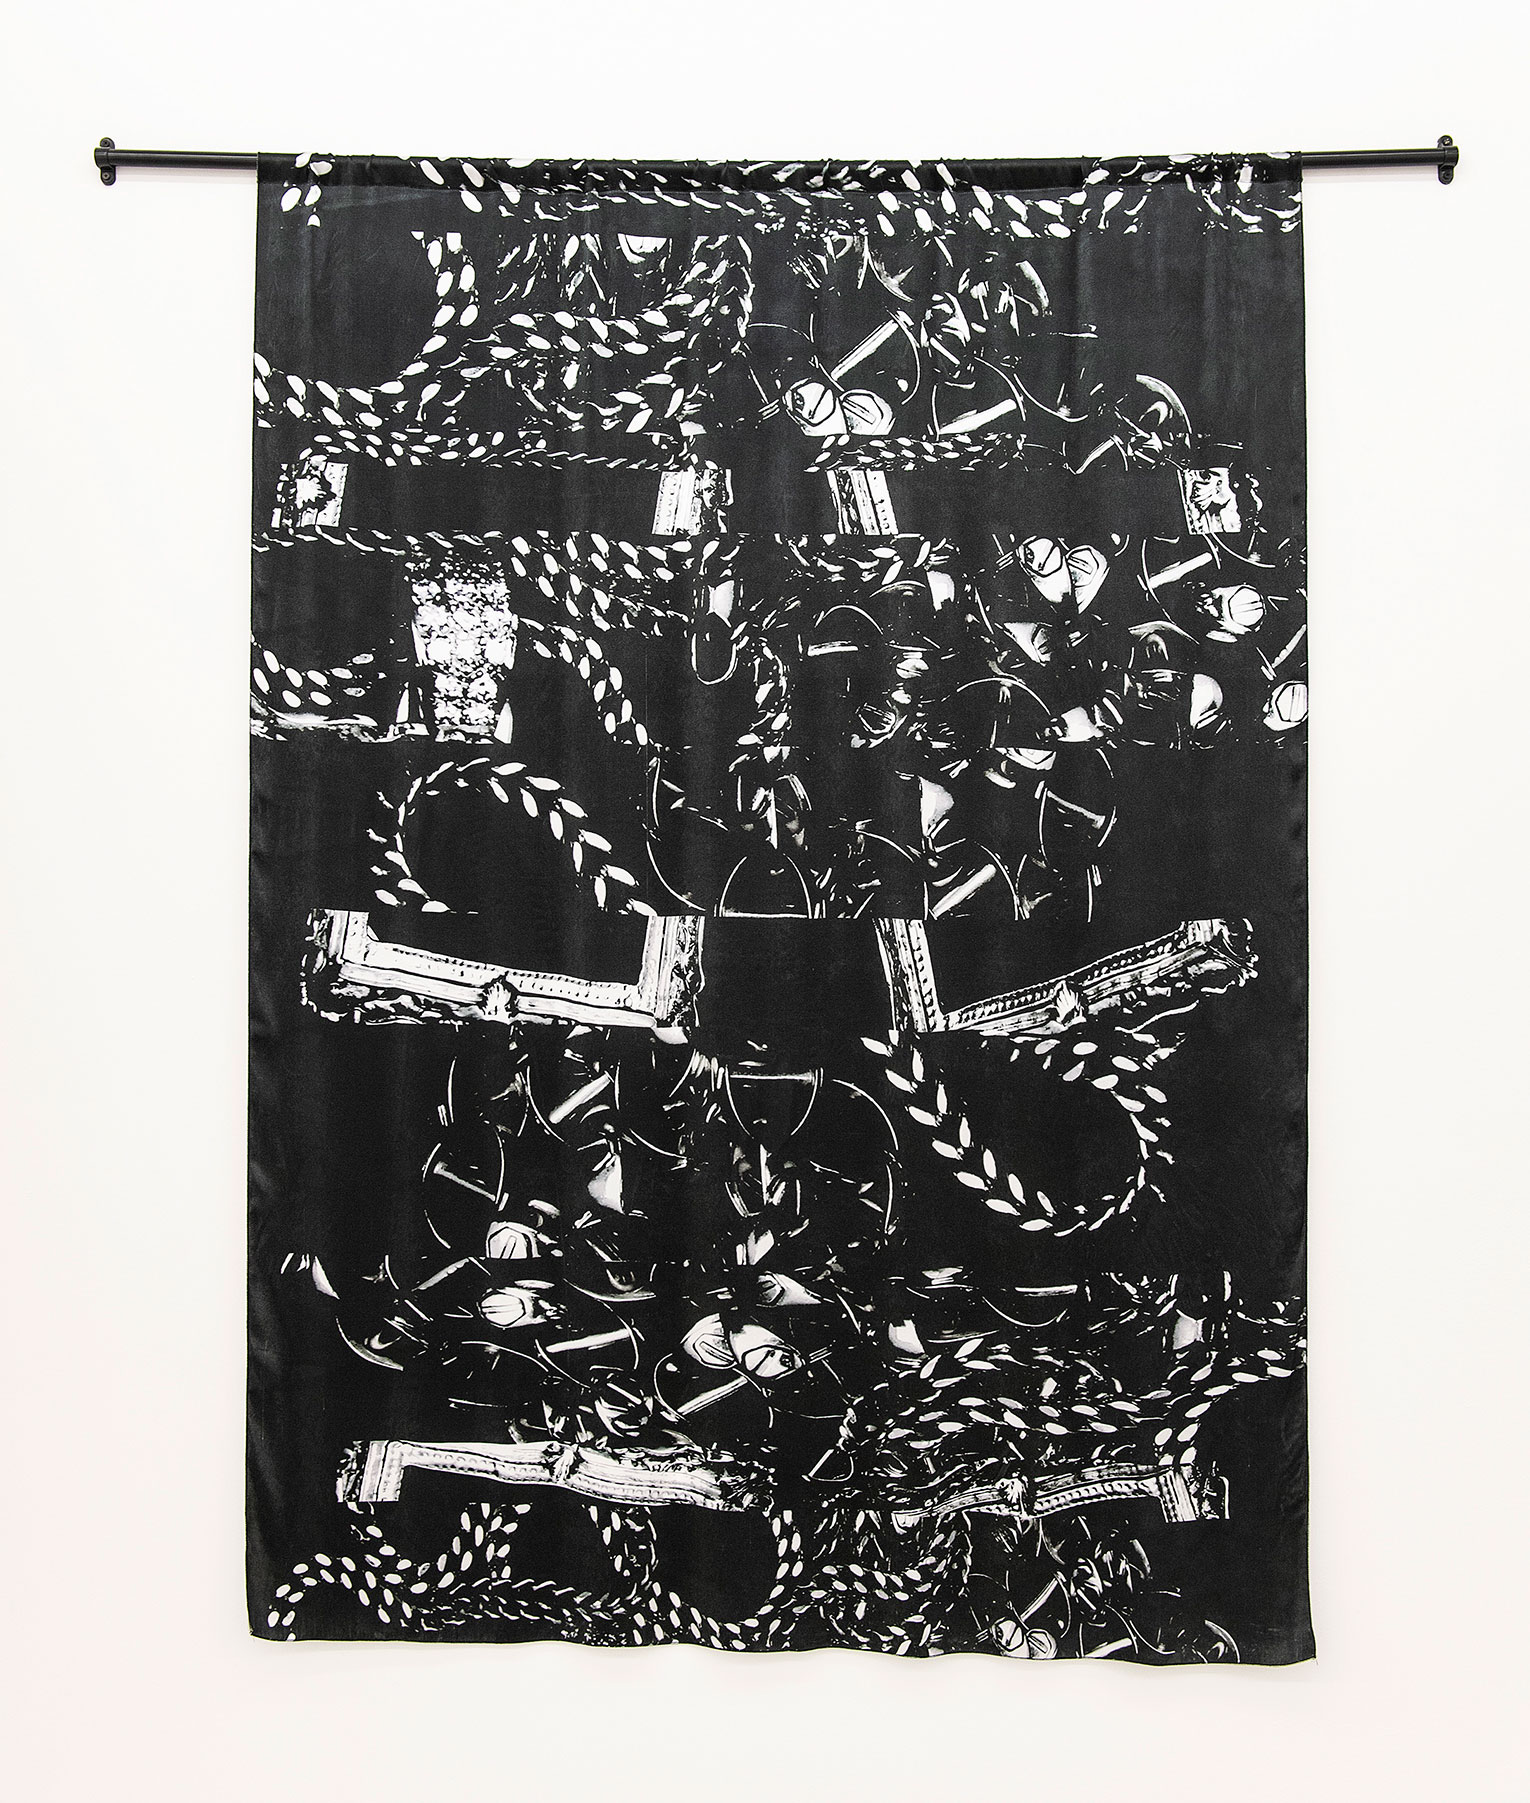 <b>Title: </b>Dubois X Fanon<br /><b>Year: </b>2018<br /><b>Medium: </b>Digital print on Silk Chiffon<br /><b>Size: </b>170 x 125 cm